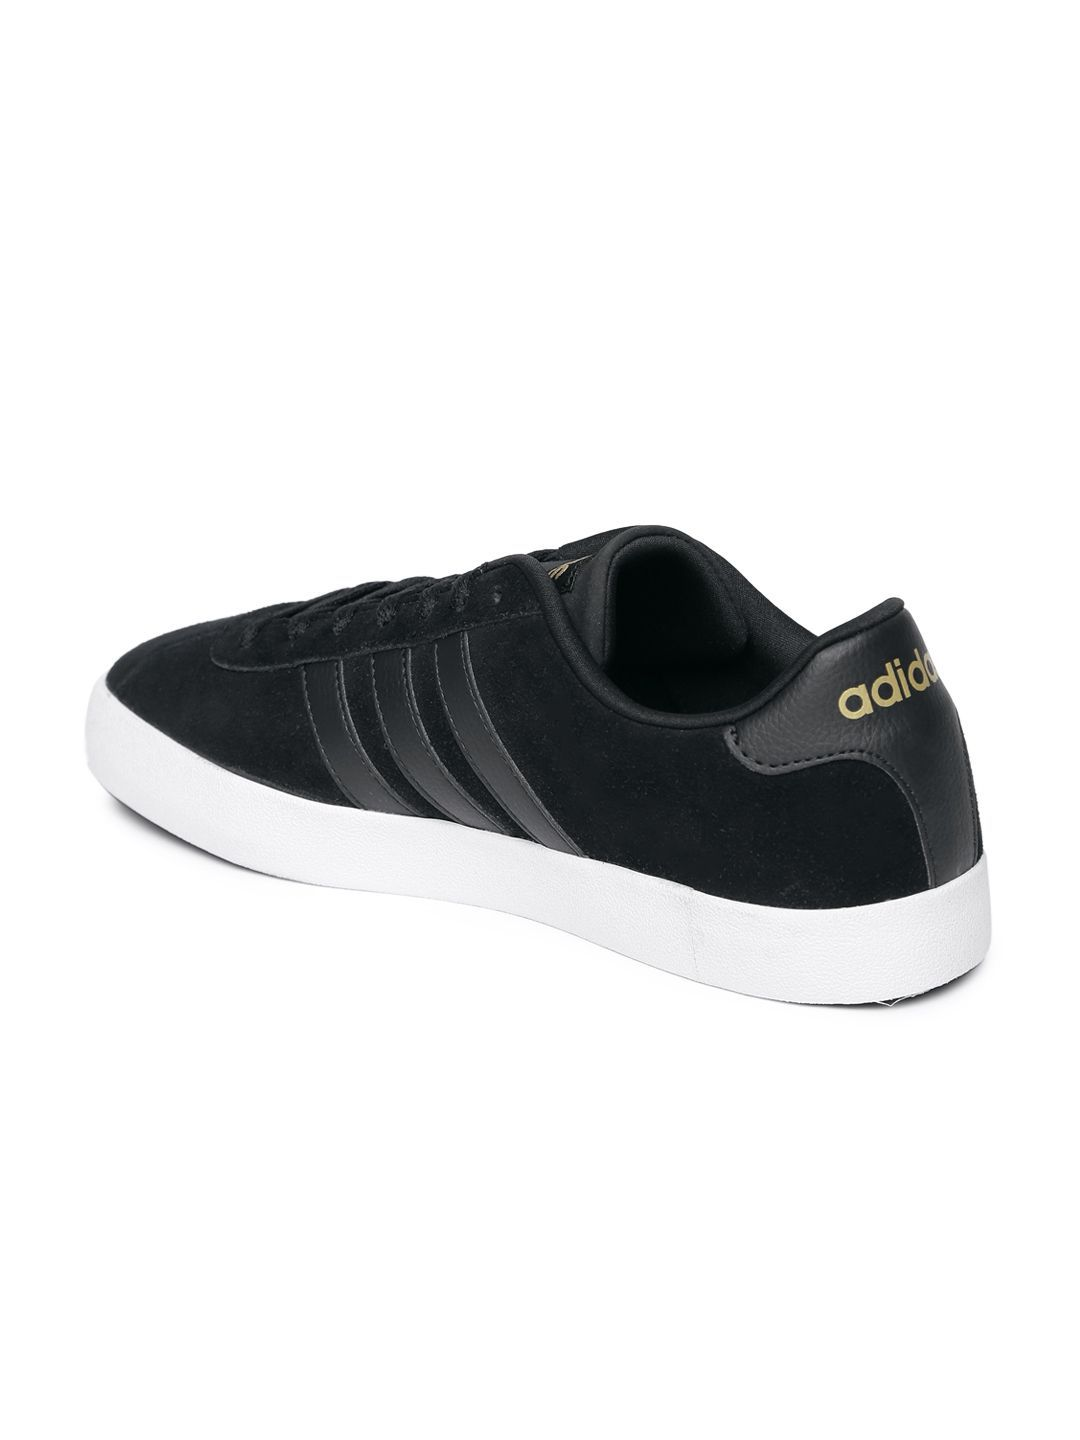 Adidas NEO Men Vlcourt Vulc Sneakers Black Casual Shoes